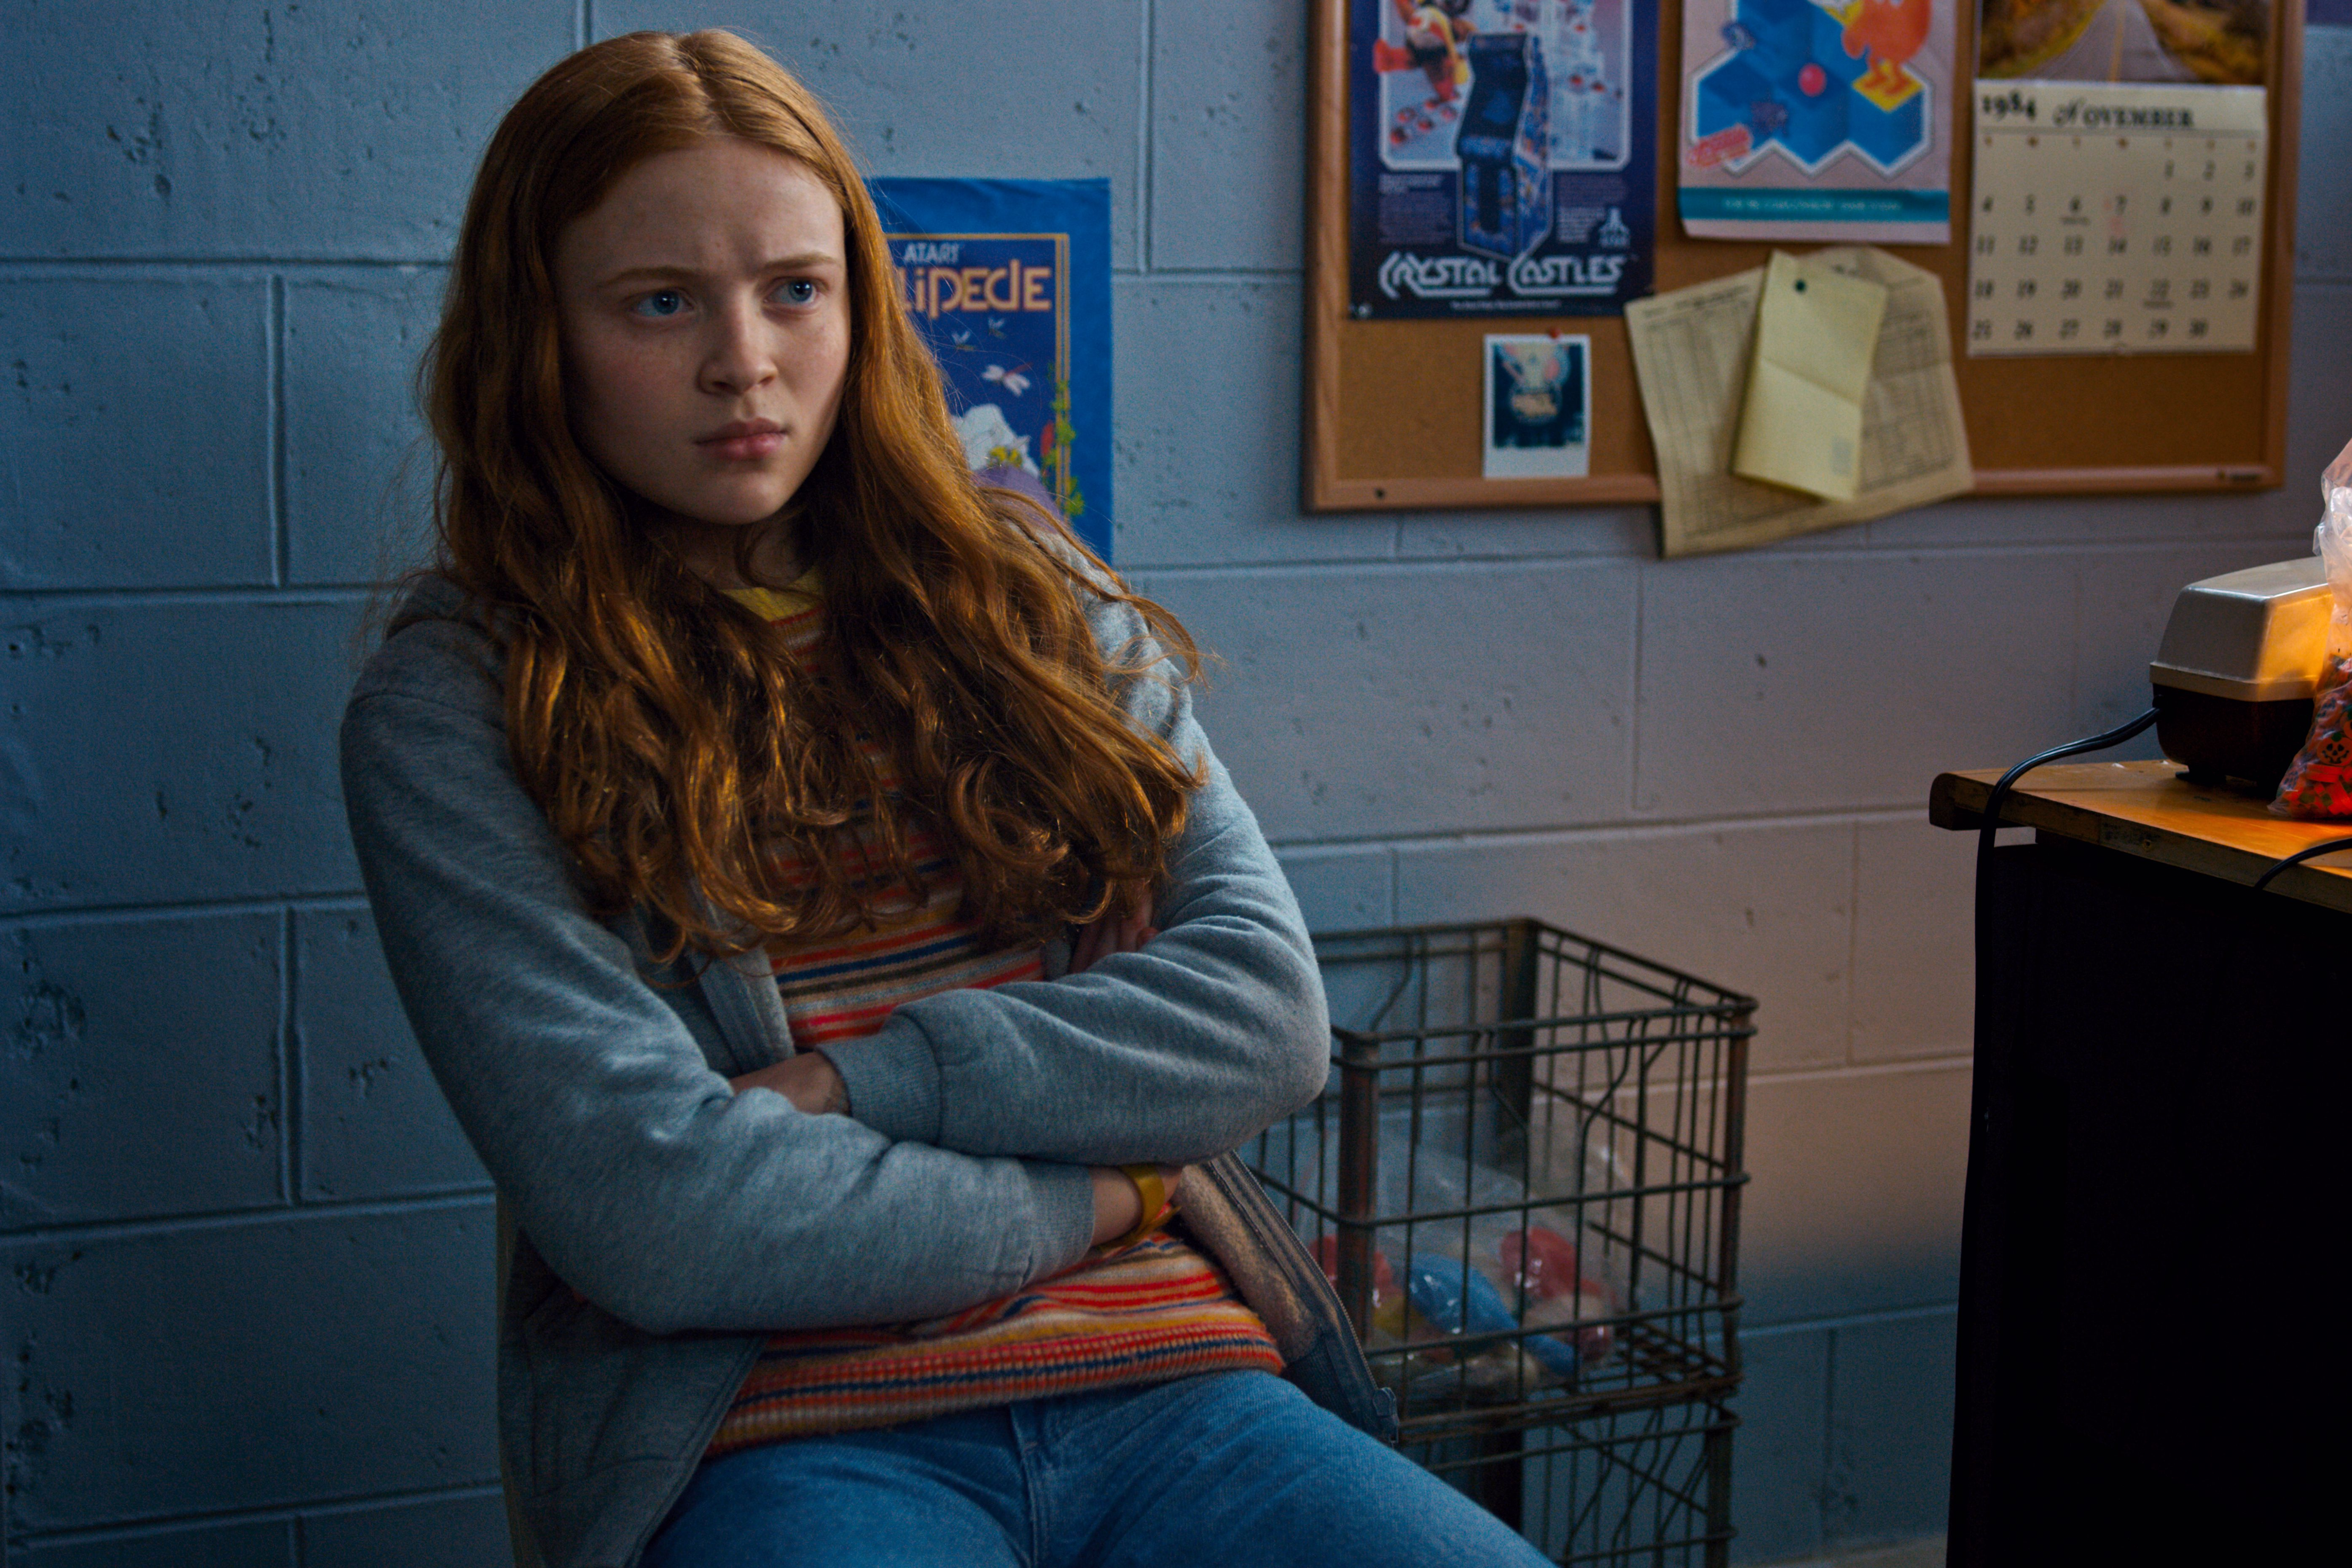 Very Cute Wallpapers For Mobile 240x320 Sadie Sink As Max Stranger Things Season 2 Hd Tv Shows